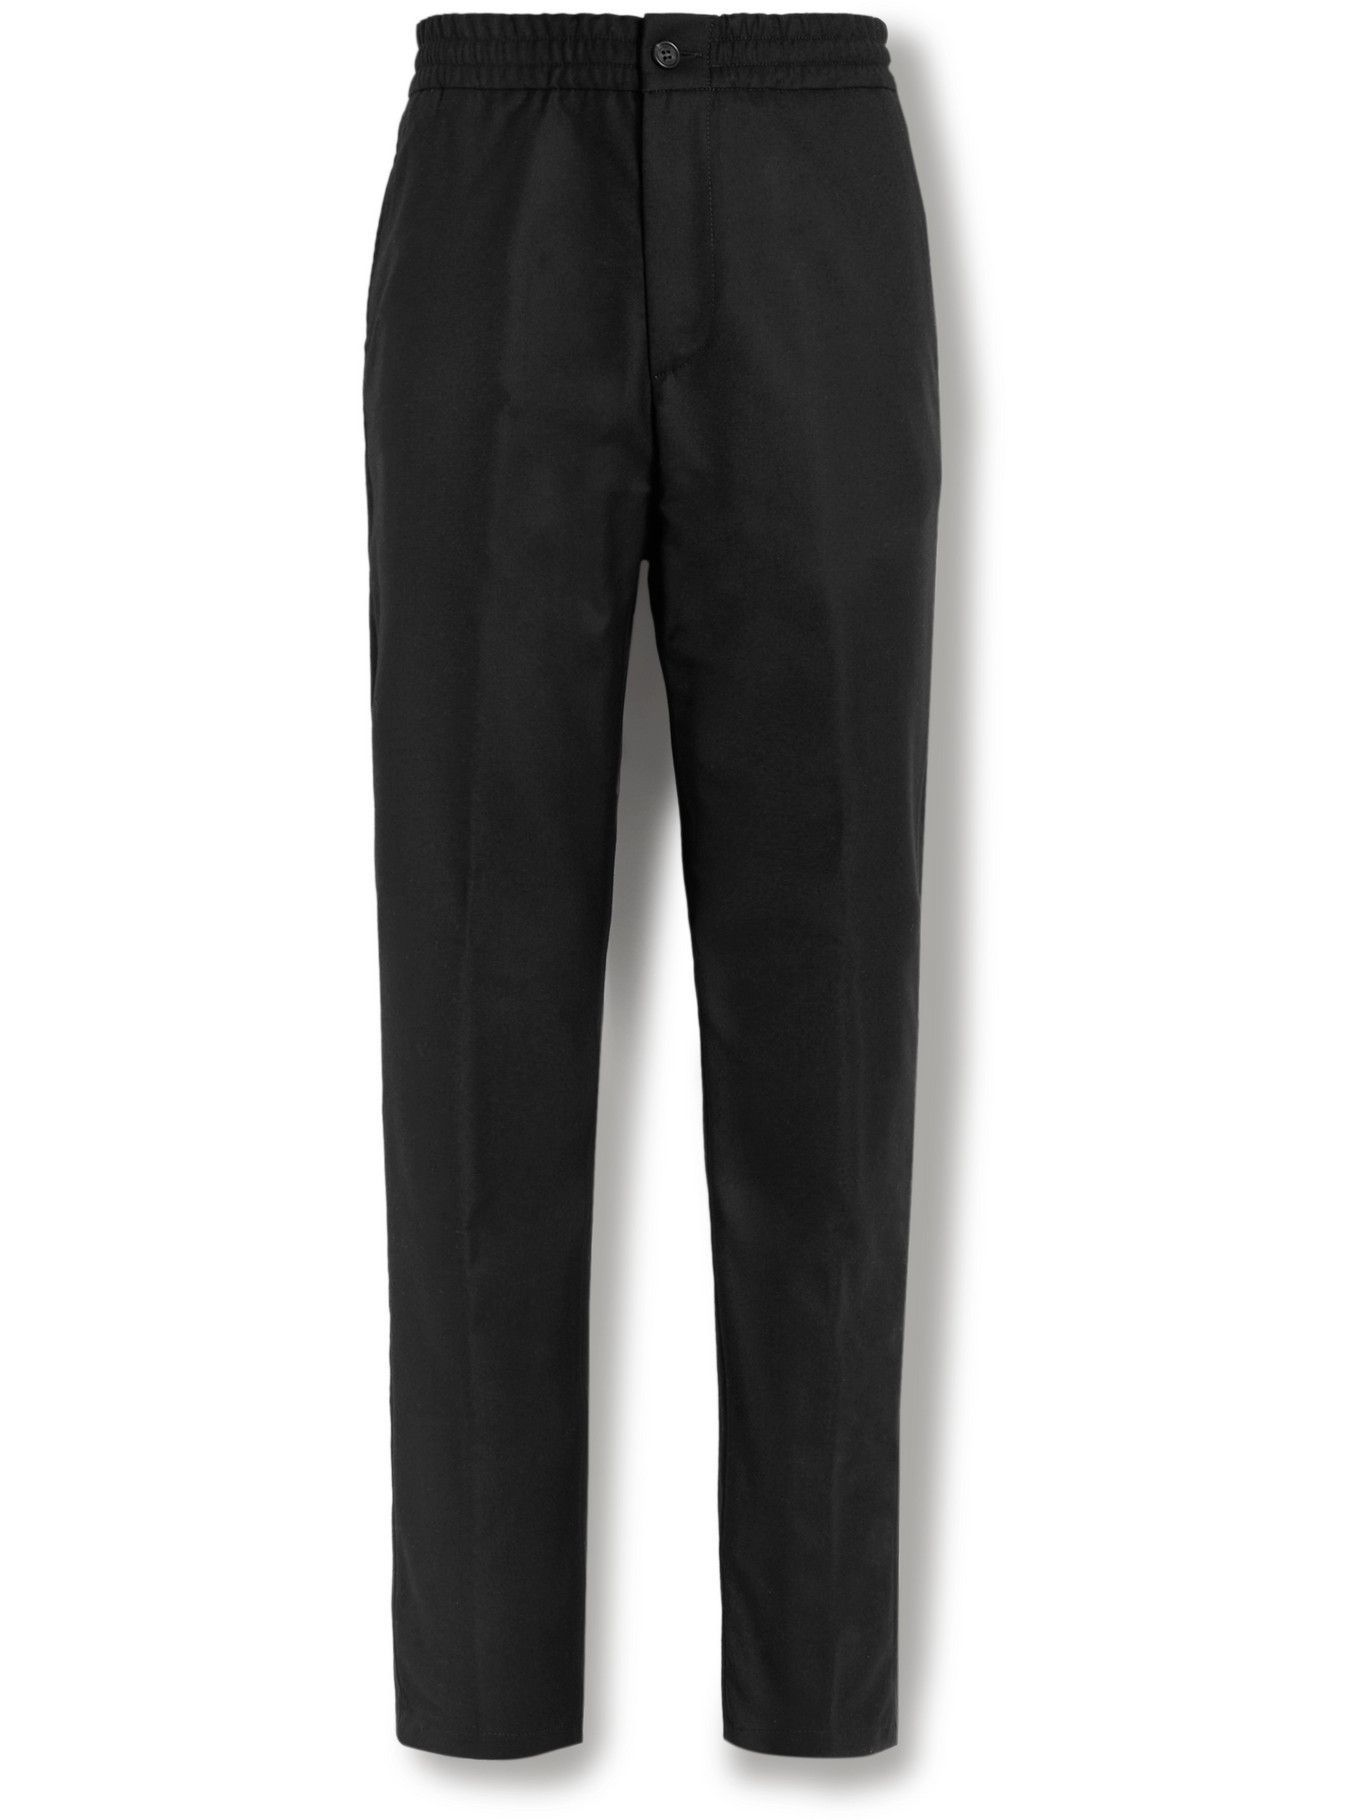 Dunhill - Wool-Flannel Trousers - Black